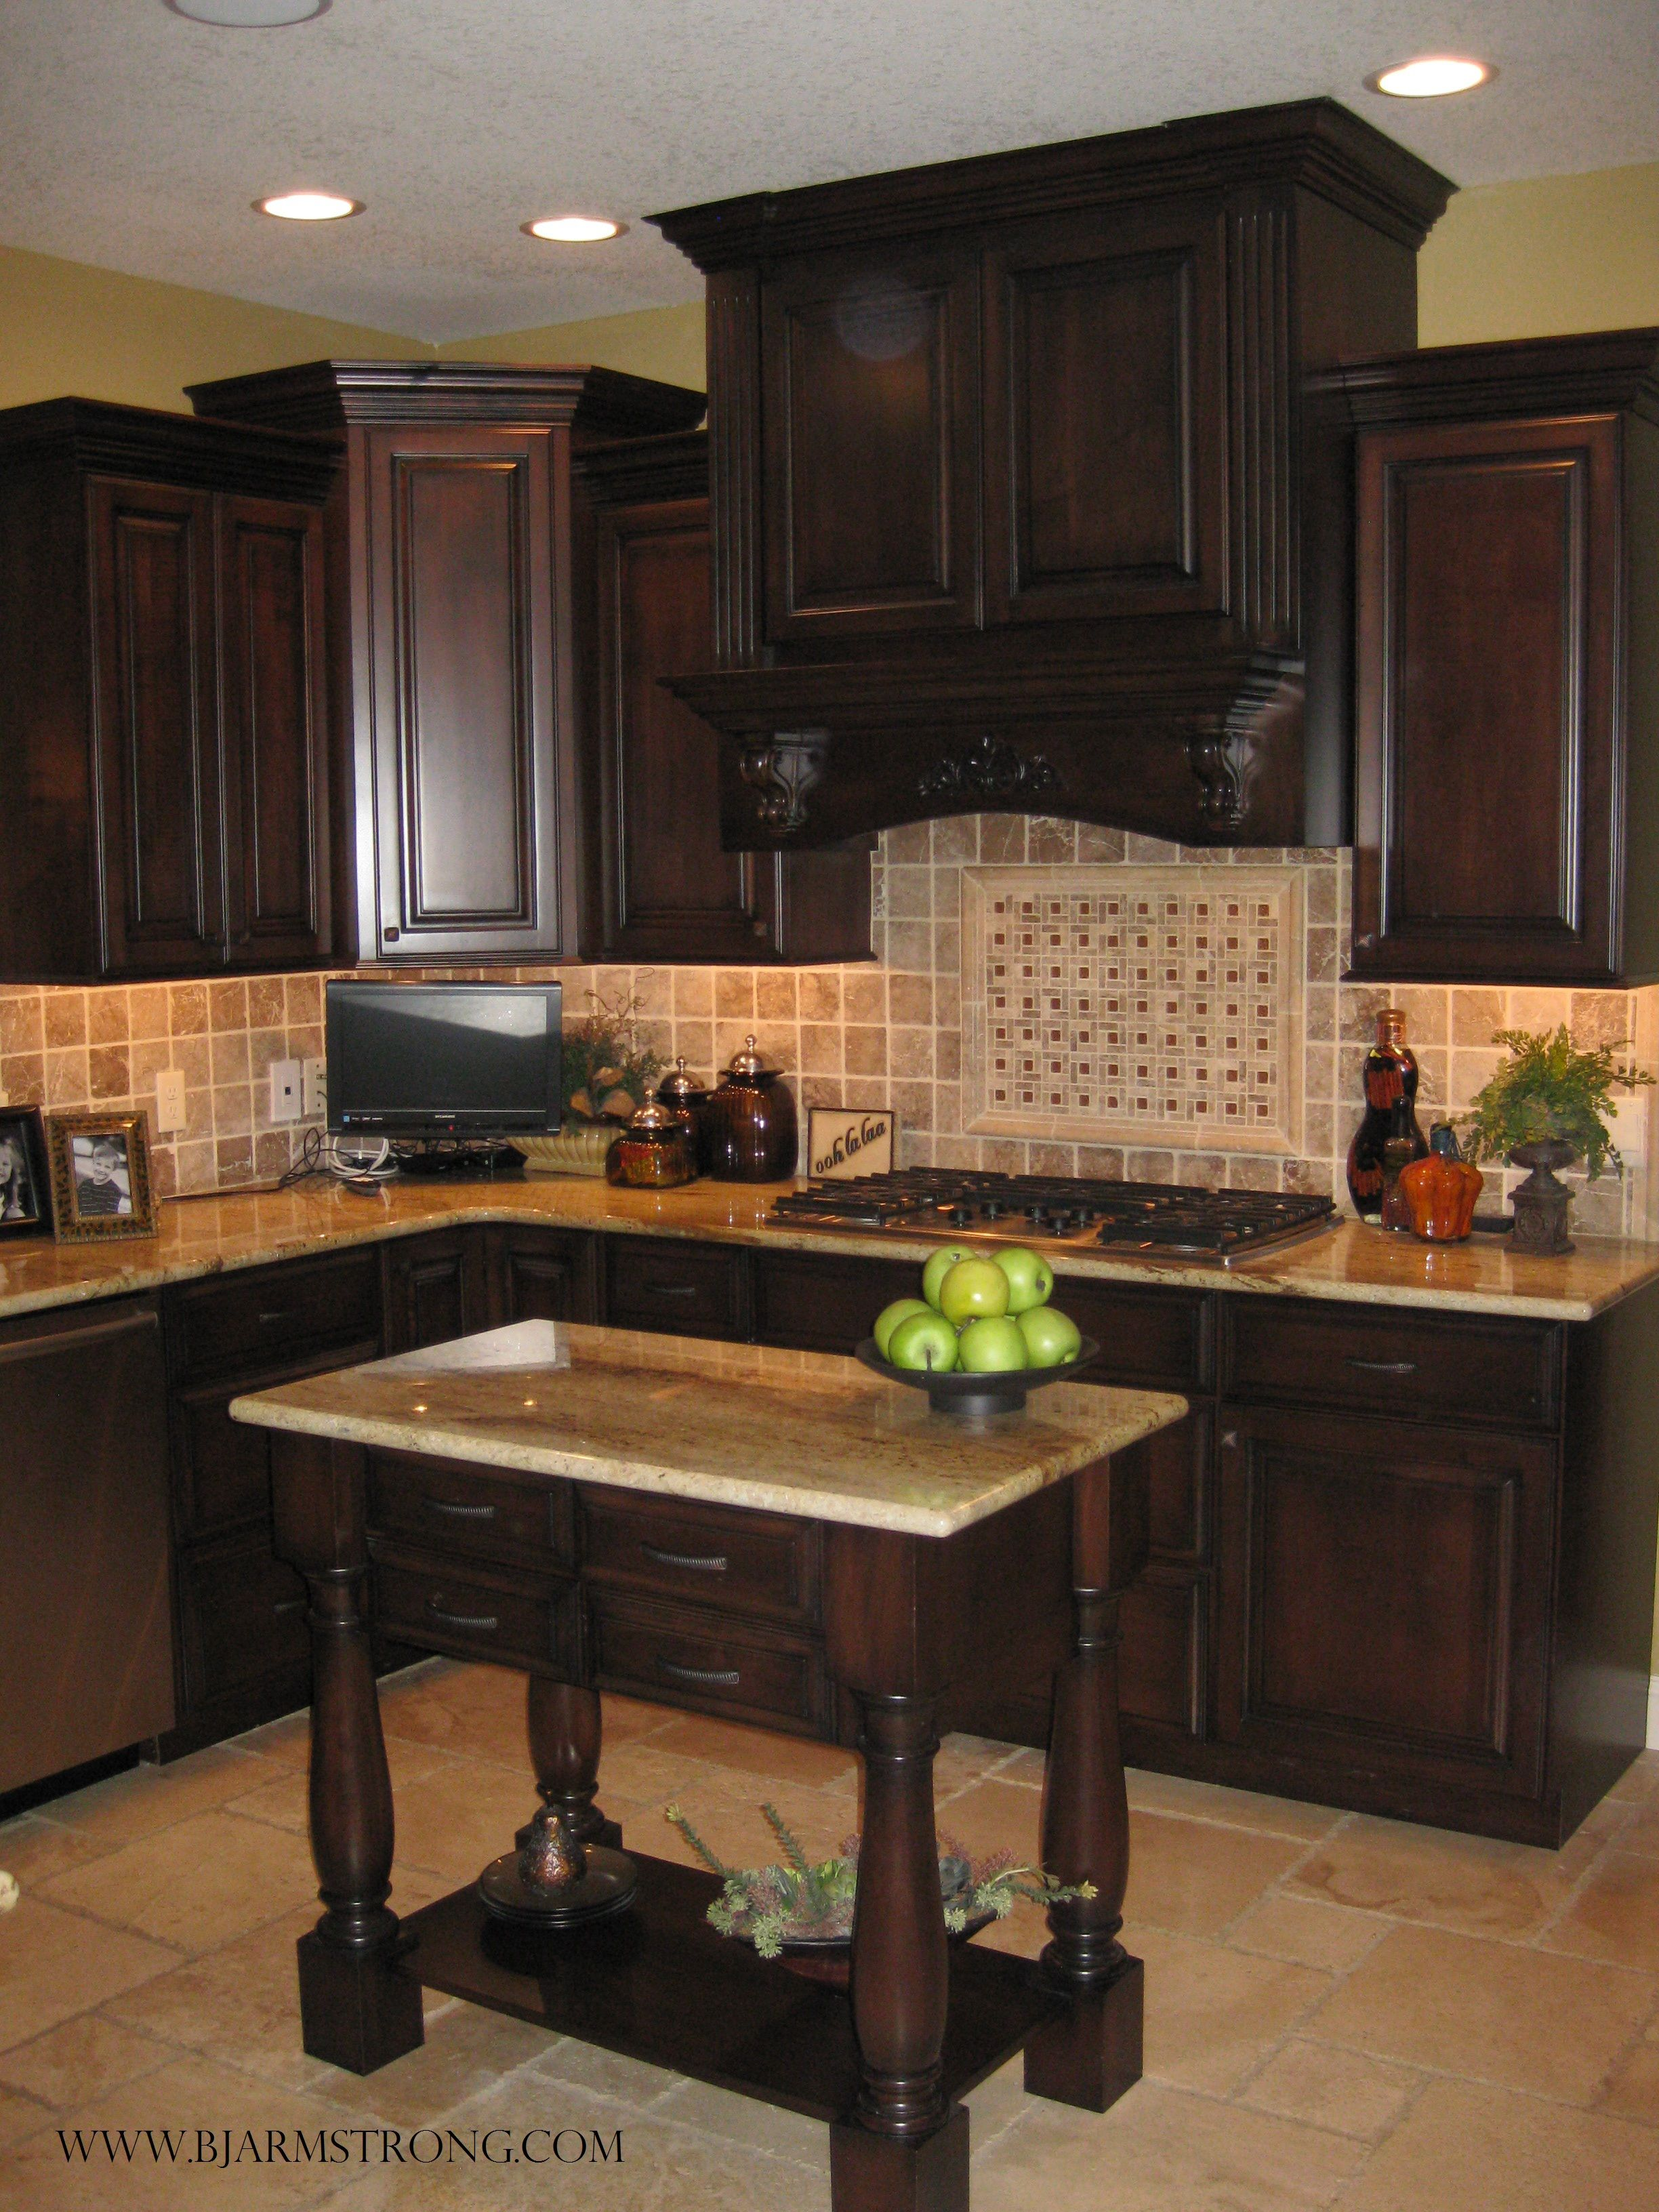 Custom Kitchen Cabinets, Island with Granite Countertops ...